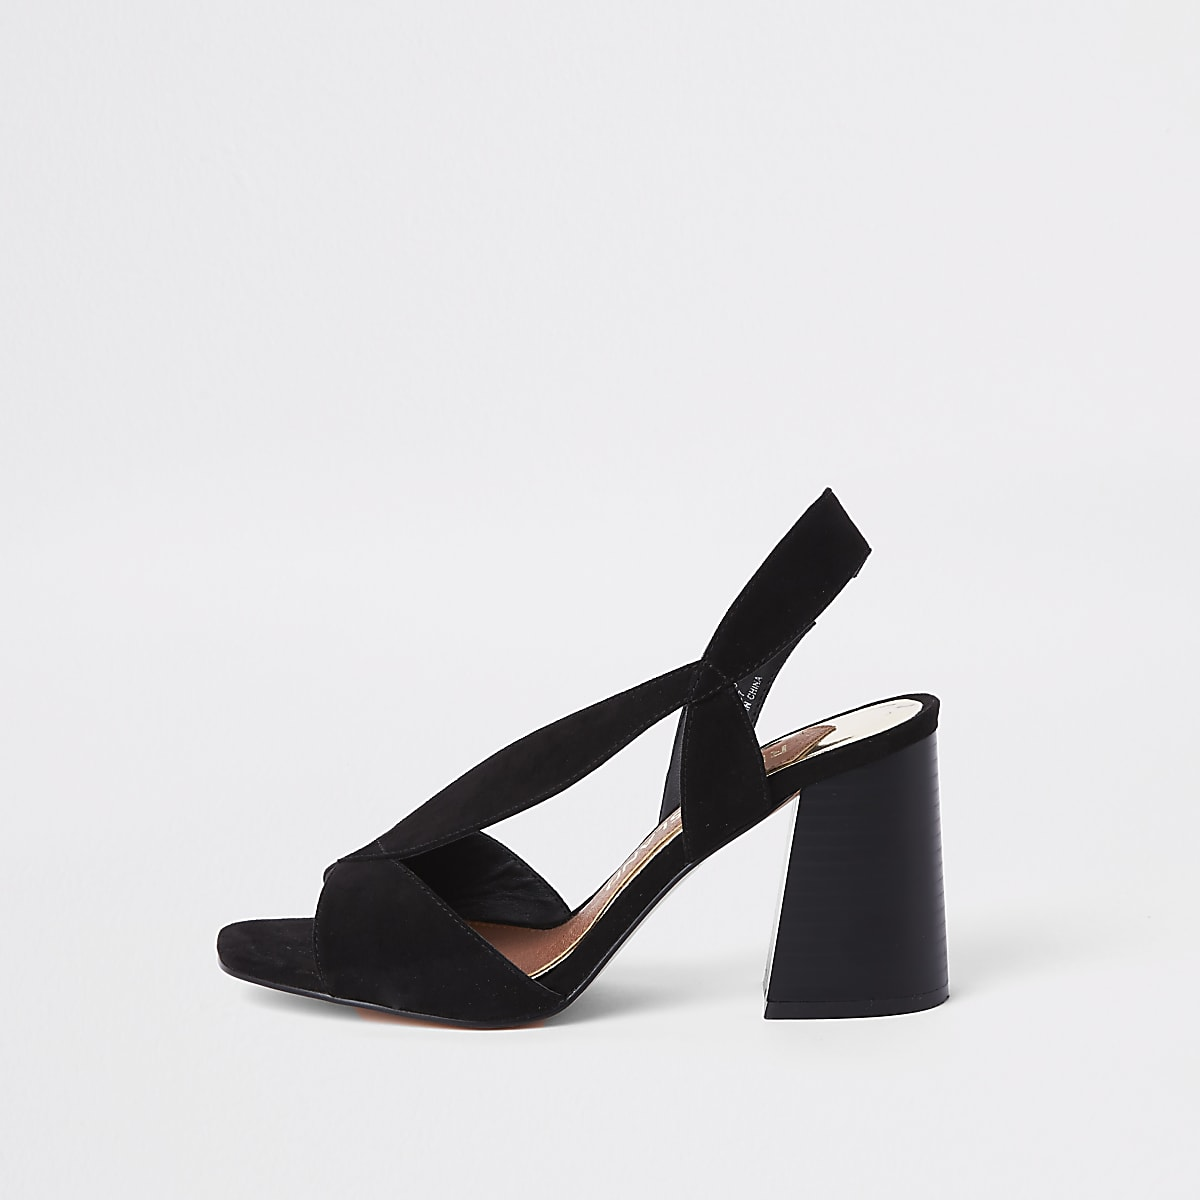 Black wide fit asymmetric flare heel sandals